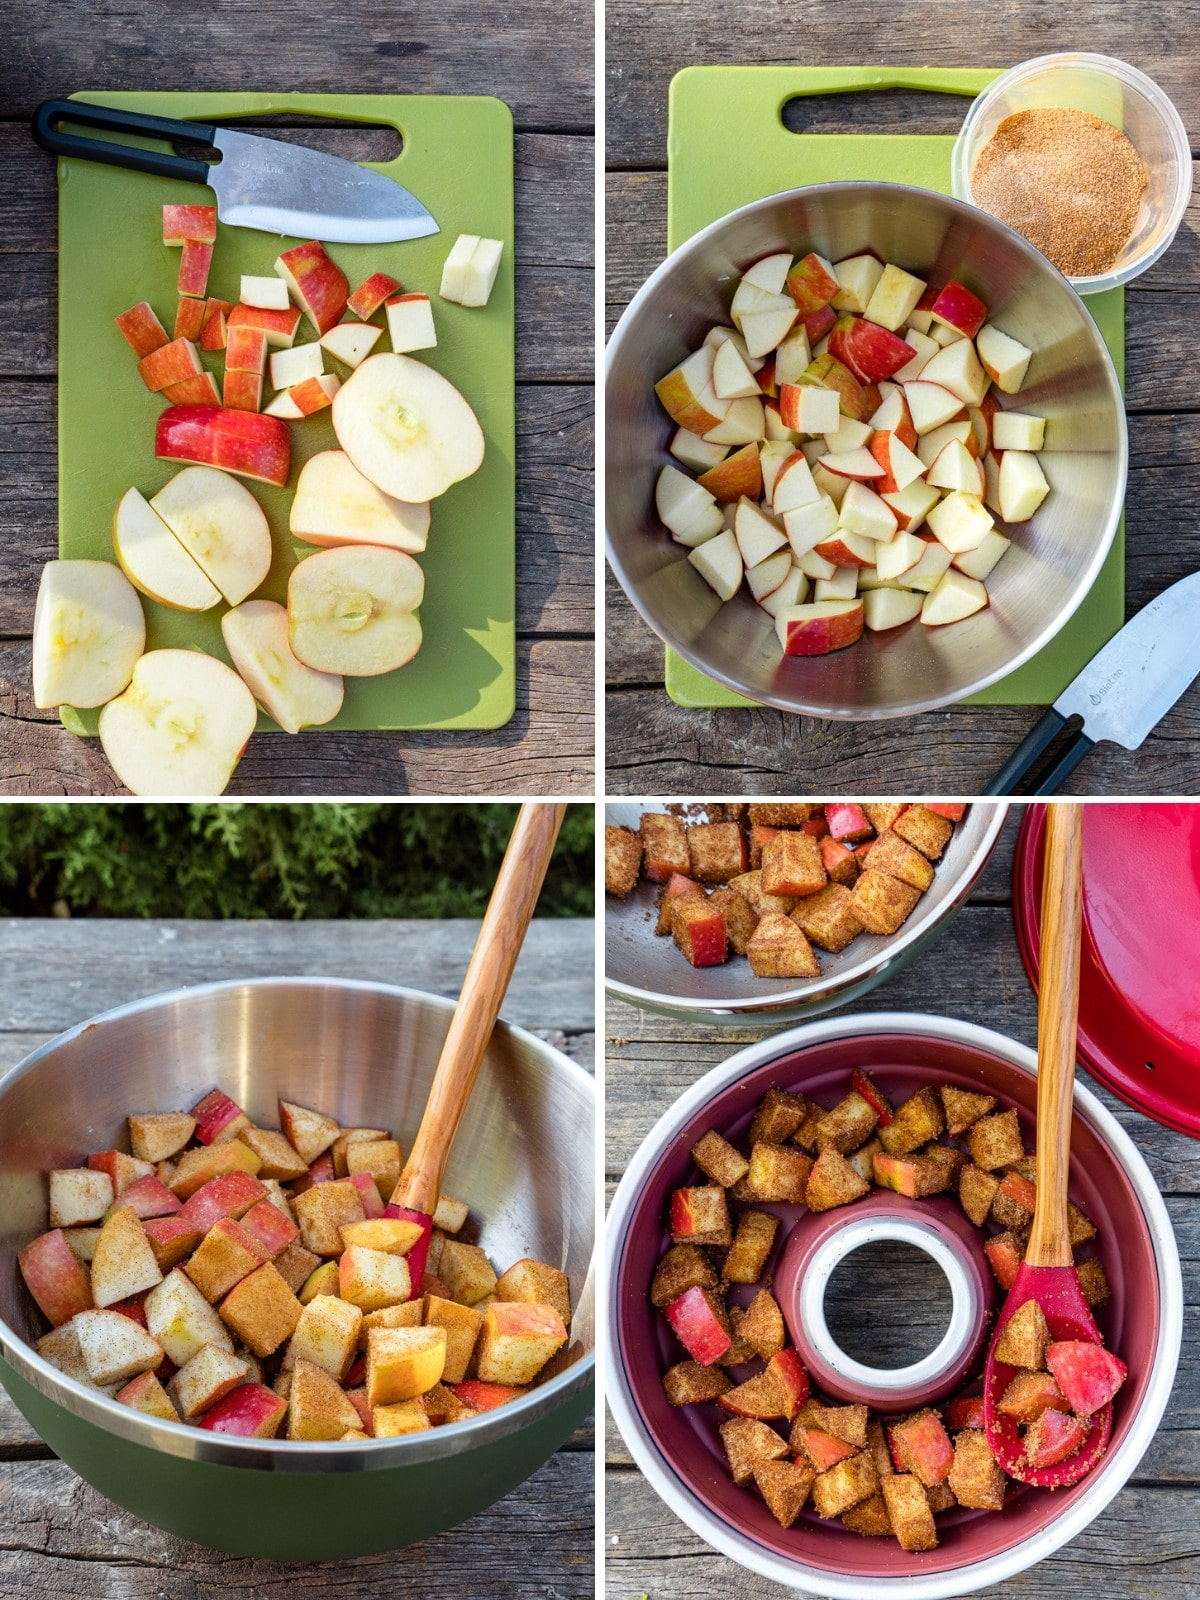 How to make apple cobbler in the omnia oven steps 1-4